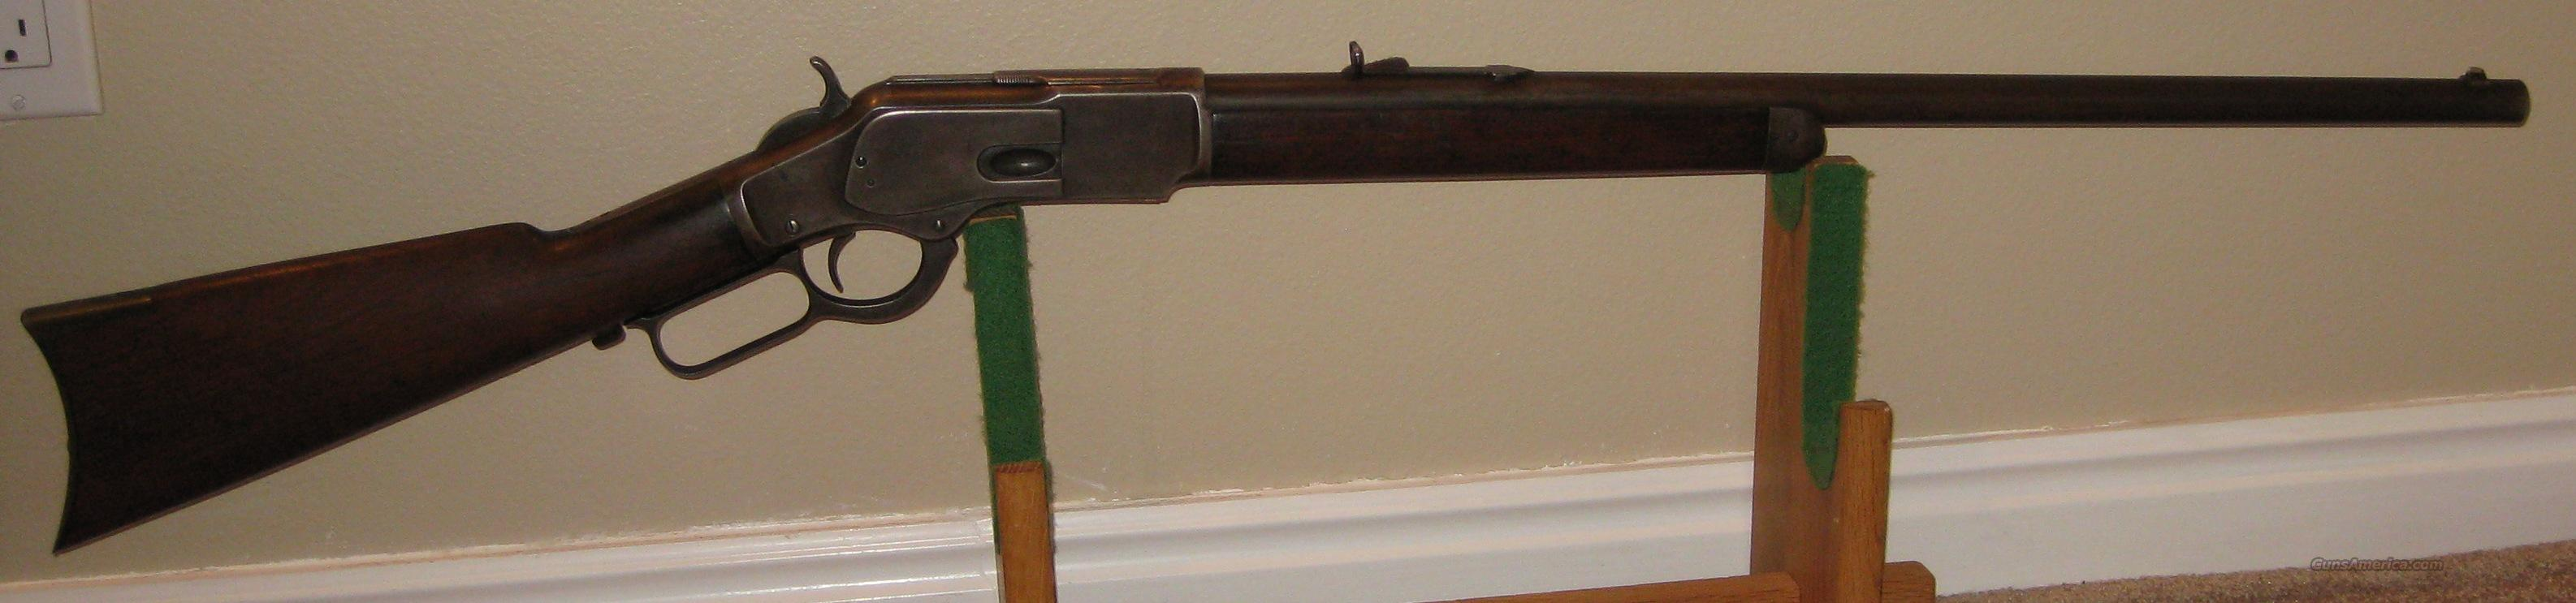 Winchester 1873 RBHMCB 44 WCF 44-40 Antique 1889  Guns > Rifles > Winchester Rifles - Pre-1899 Lever